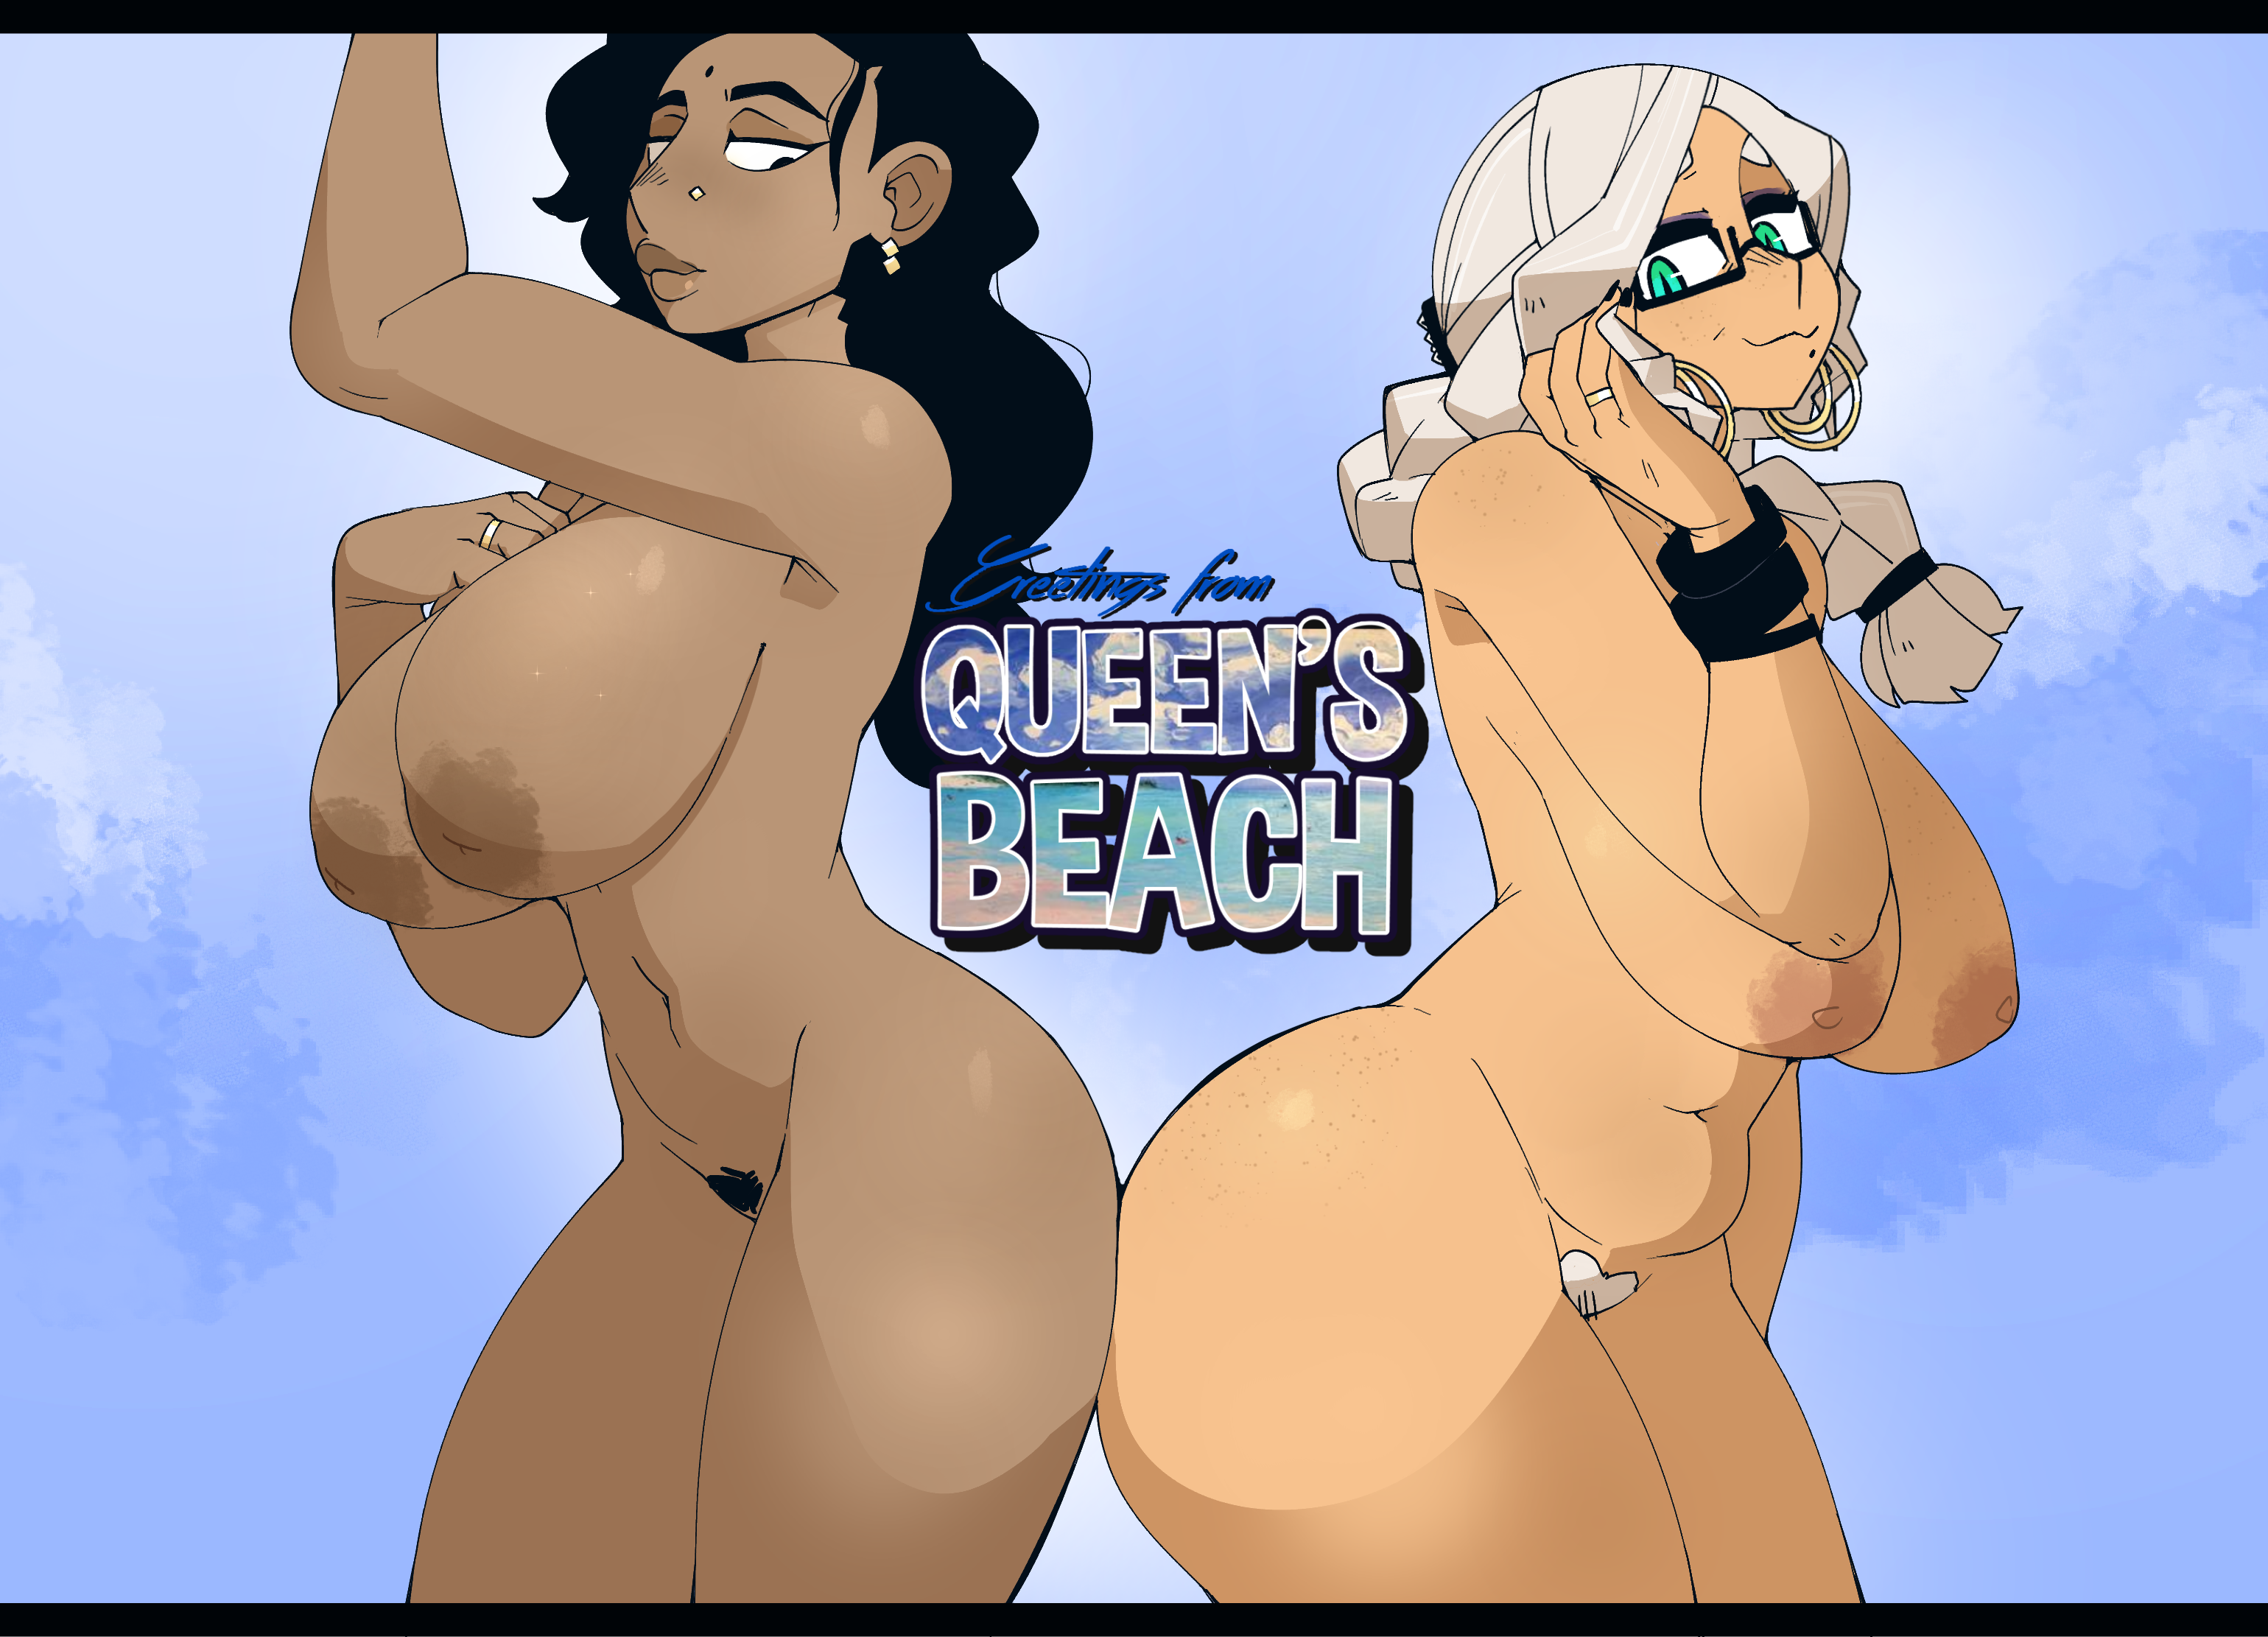 Greetings from Queen's Beach! NUDE Ver.